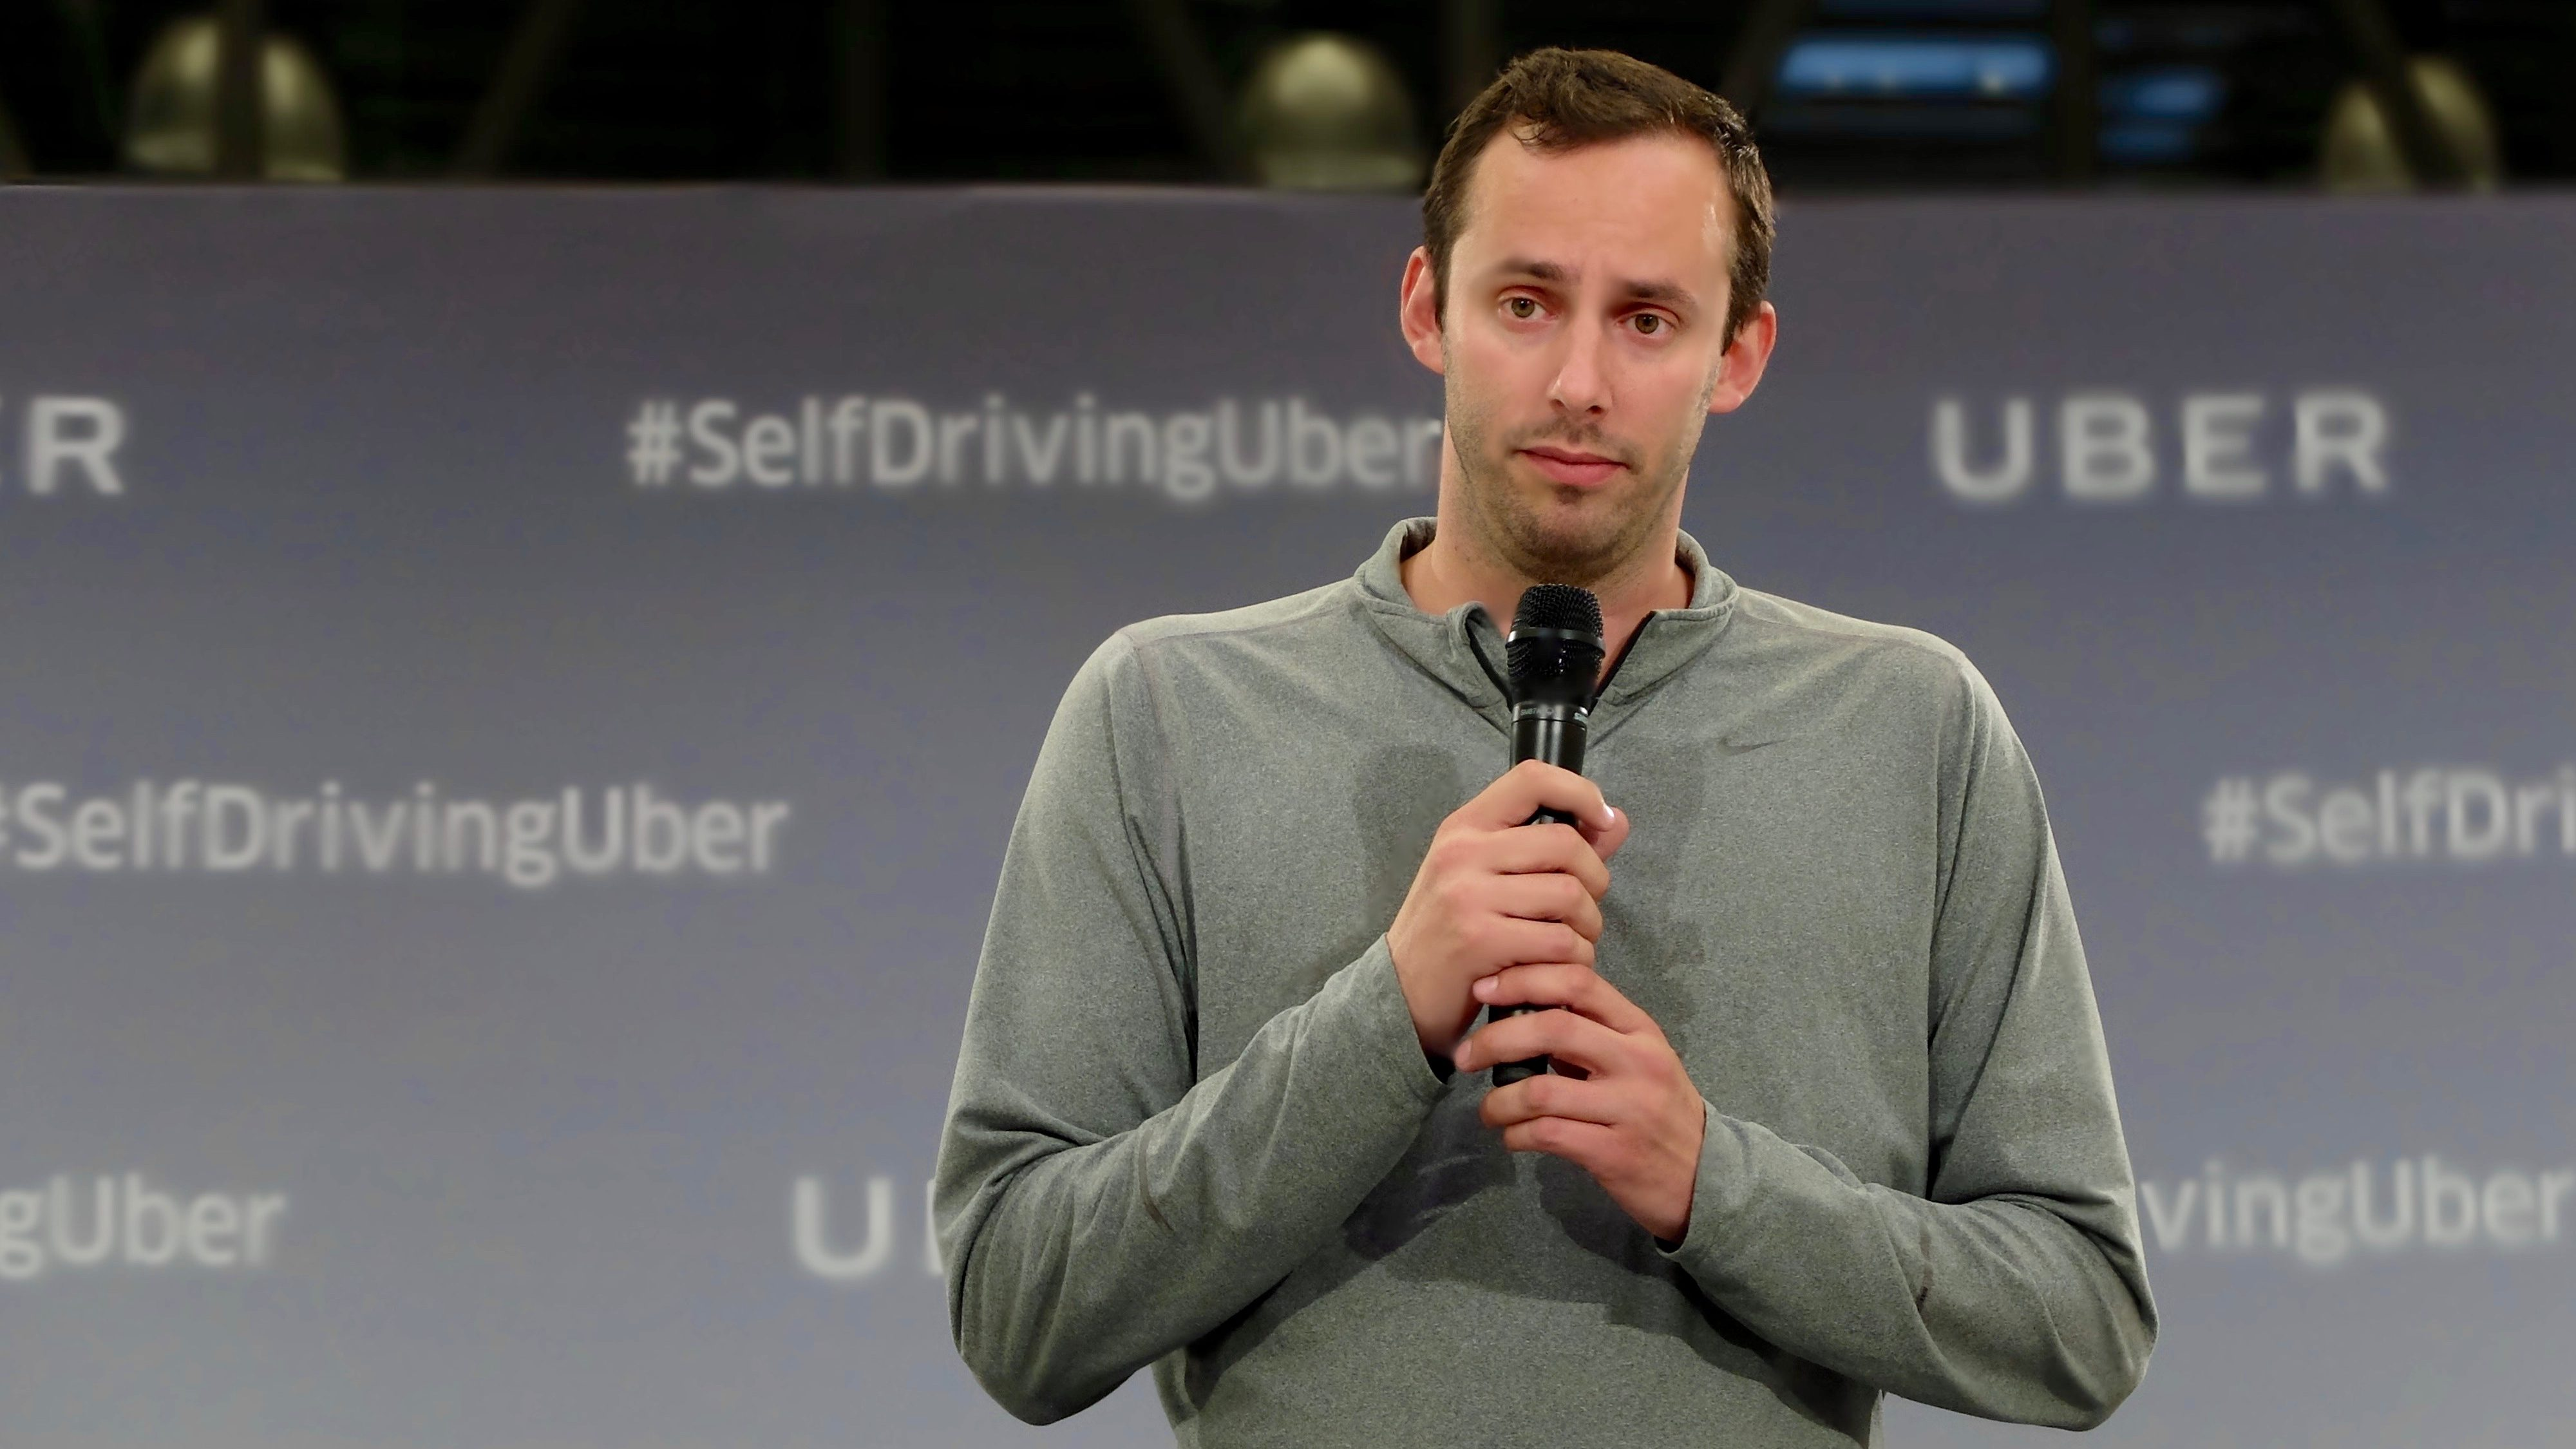 Uber engineer and former Waymo employee Anthony Levandowski